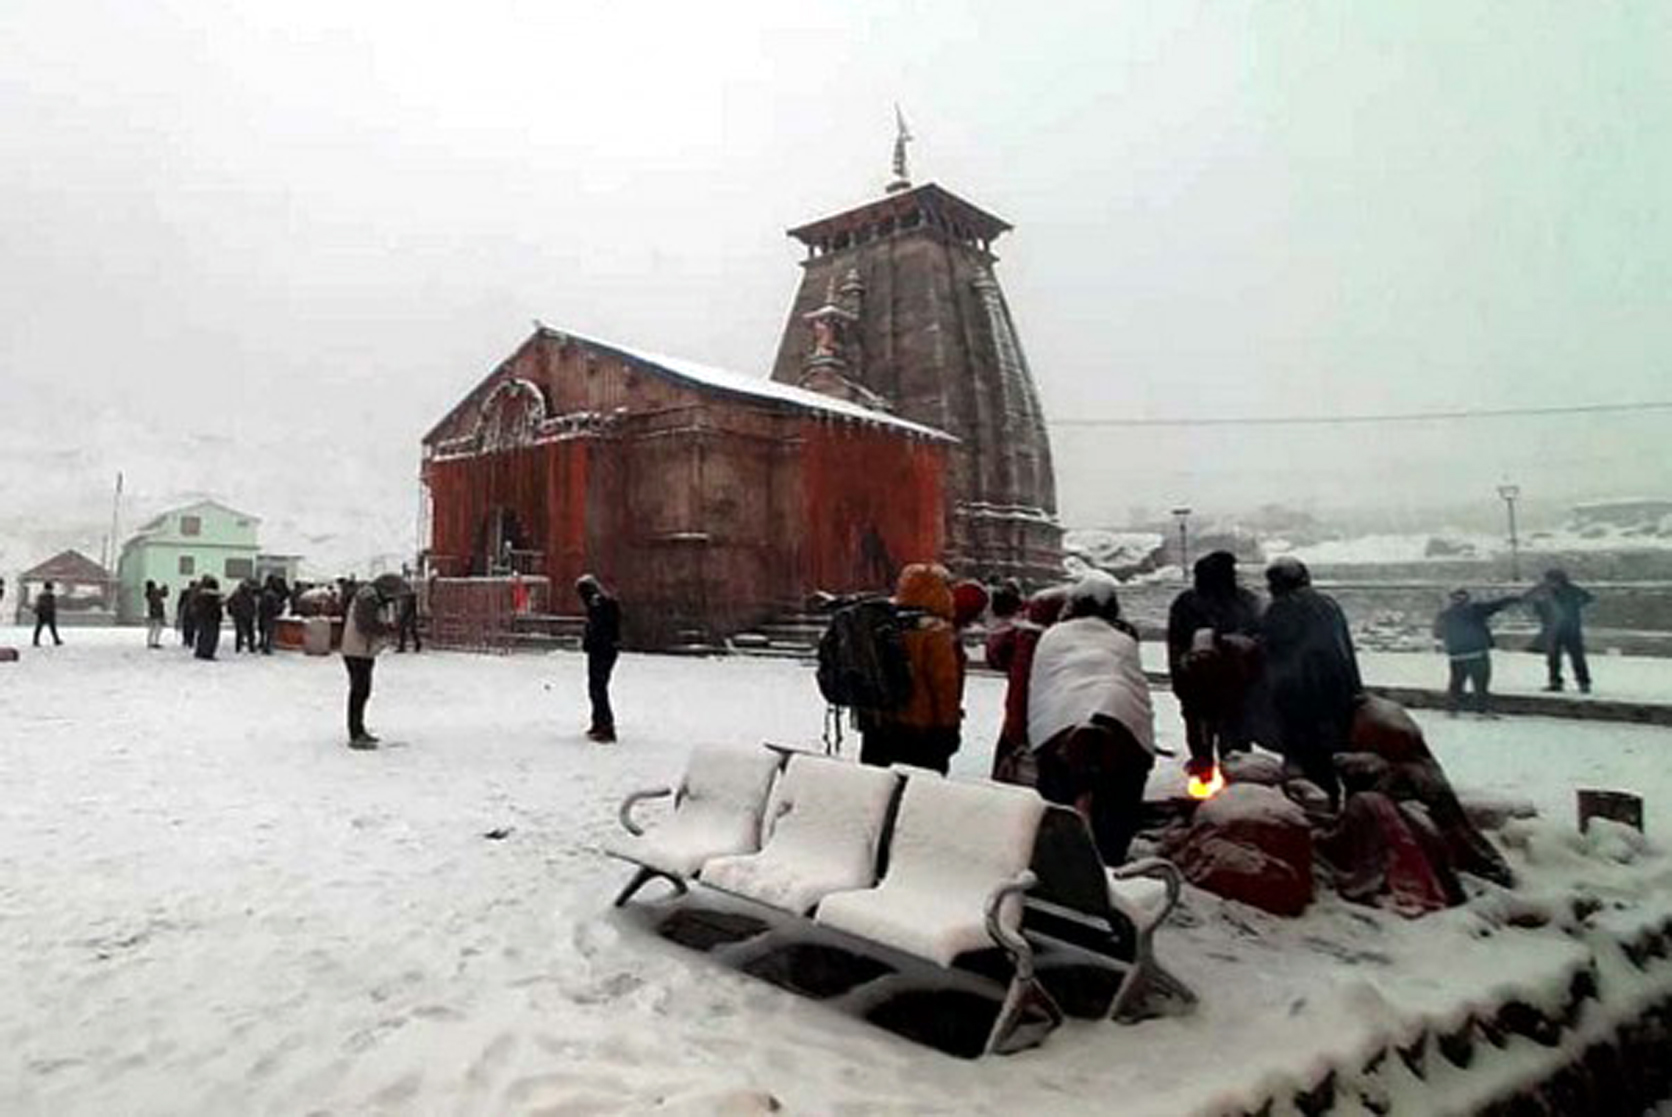 People warm themselves near a bonfire during snowfall at Kedarnath Dham in Uttarakhand. The portals of the shrine are being closed for the winter season from today.